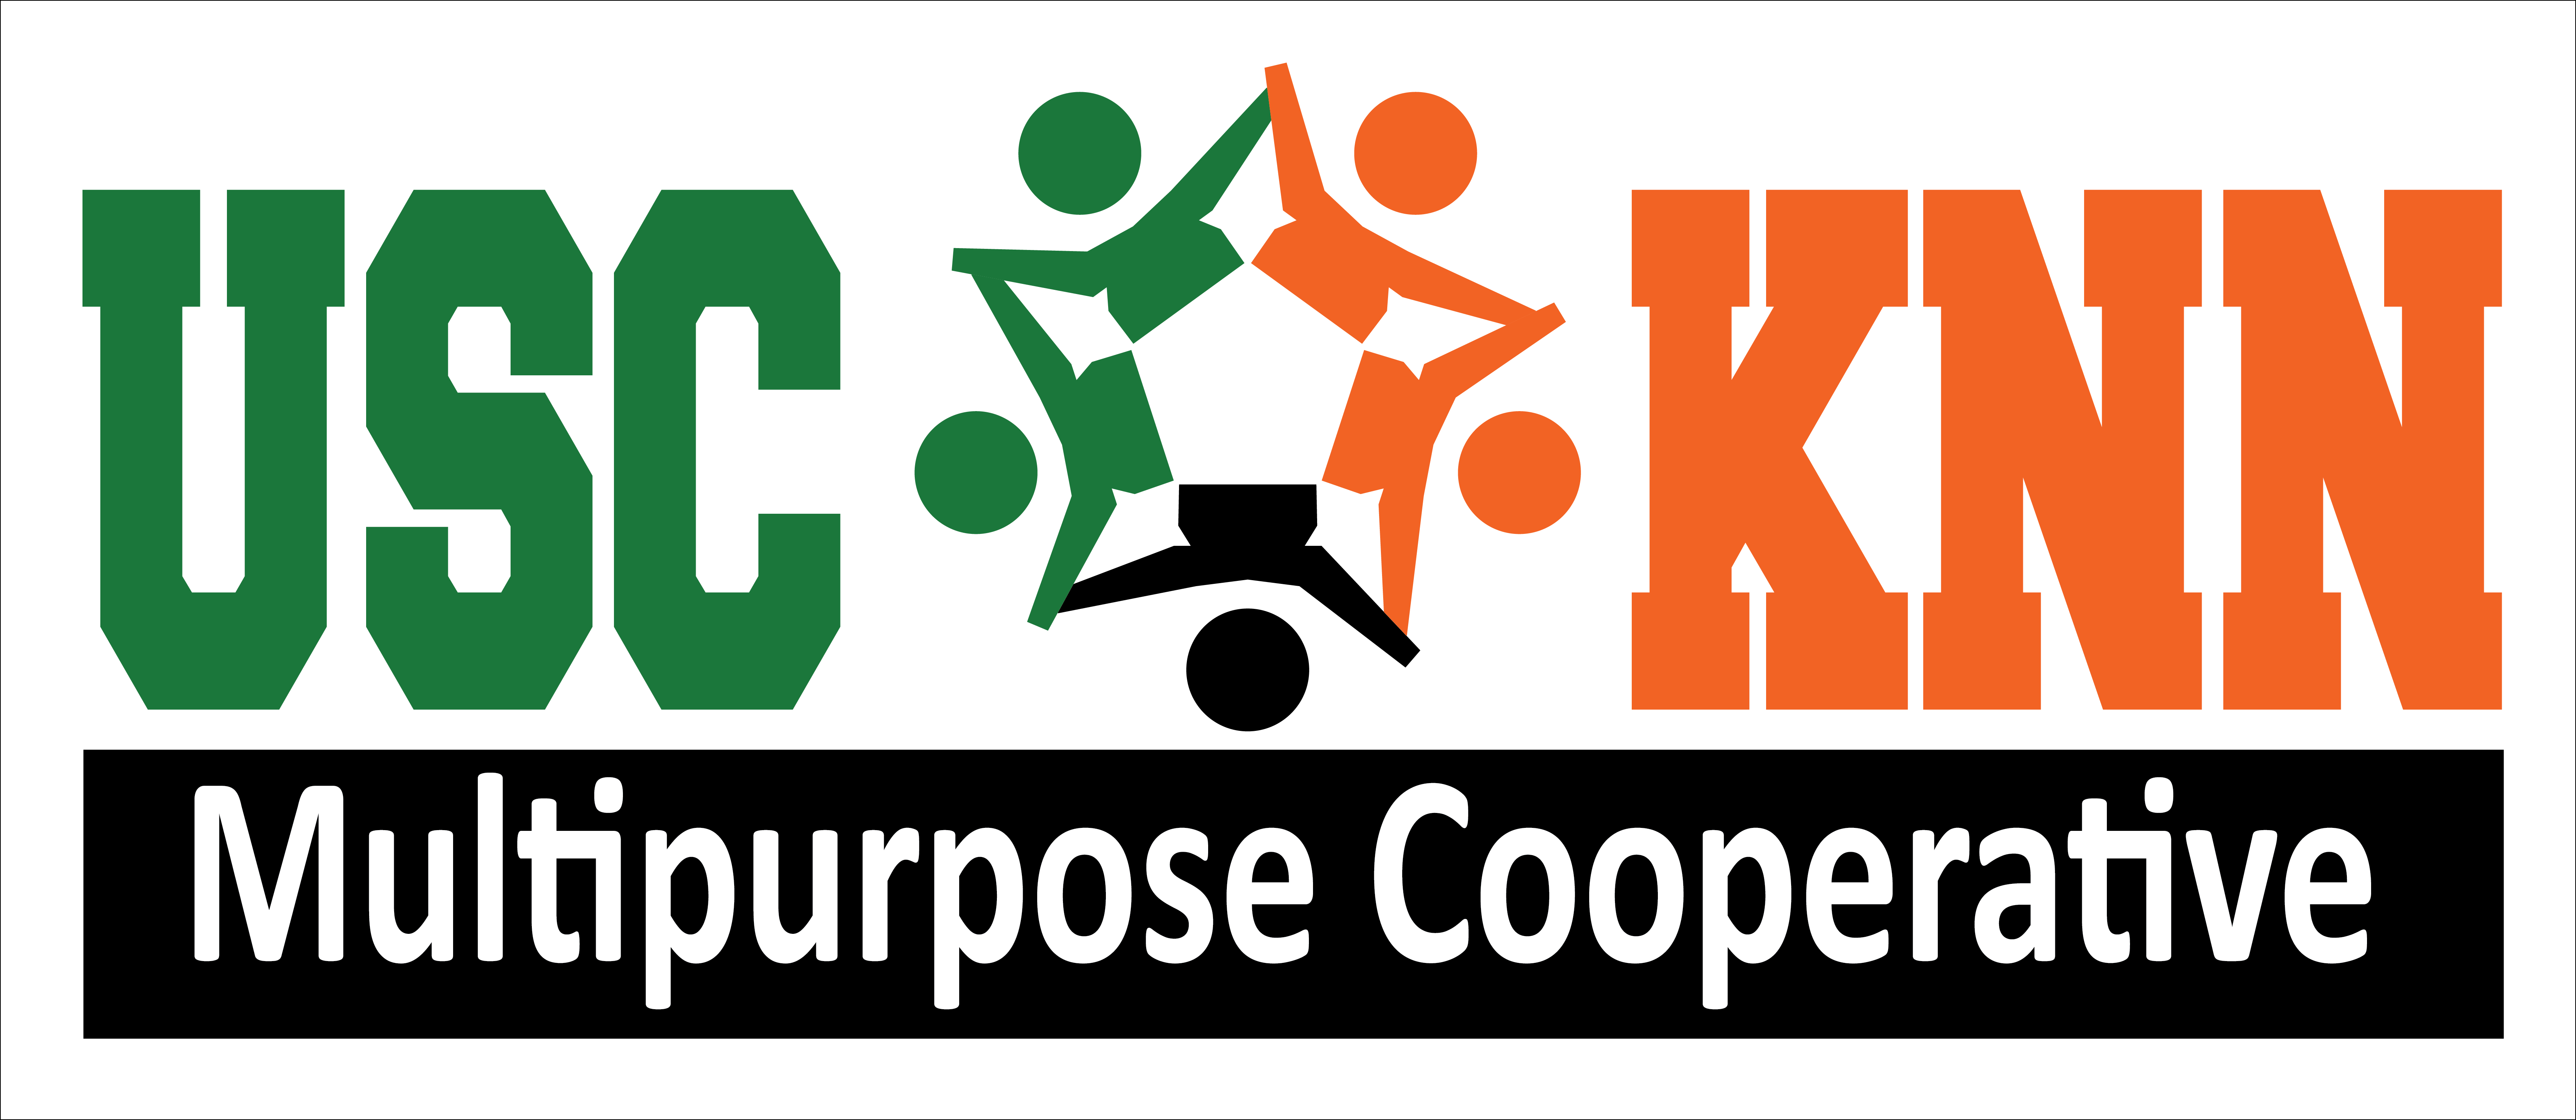 USC-KNN Multipurpose Cooperative